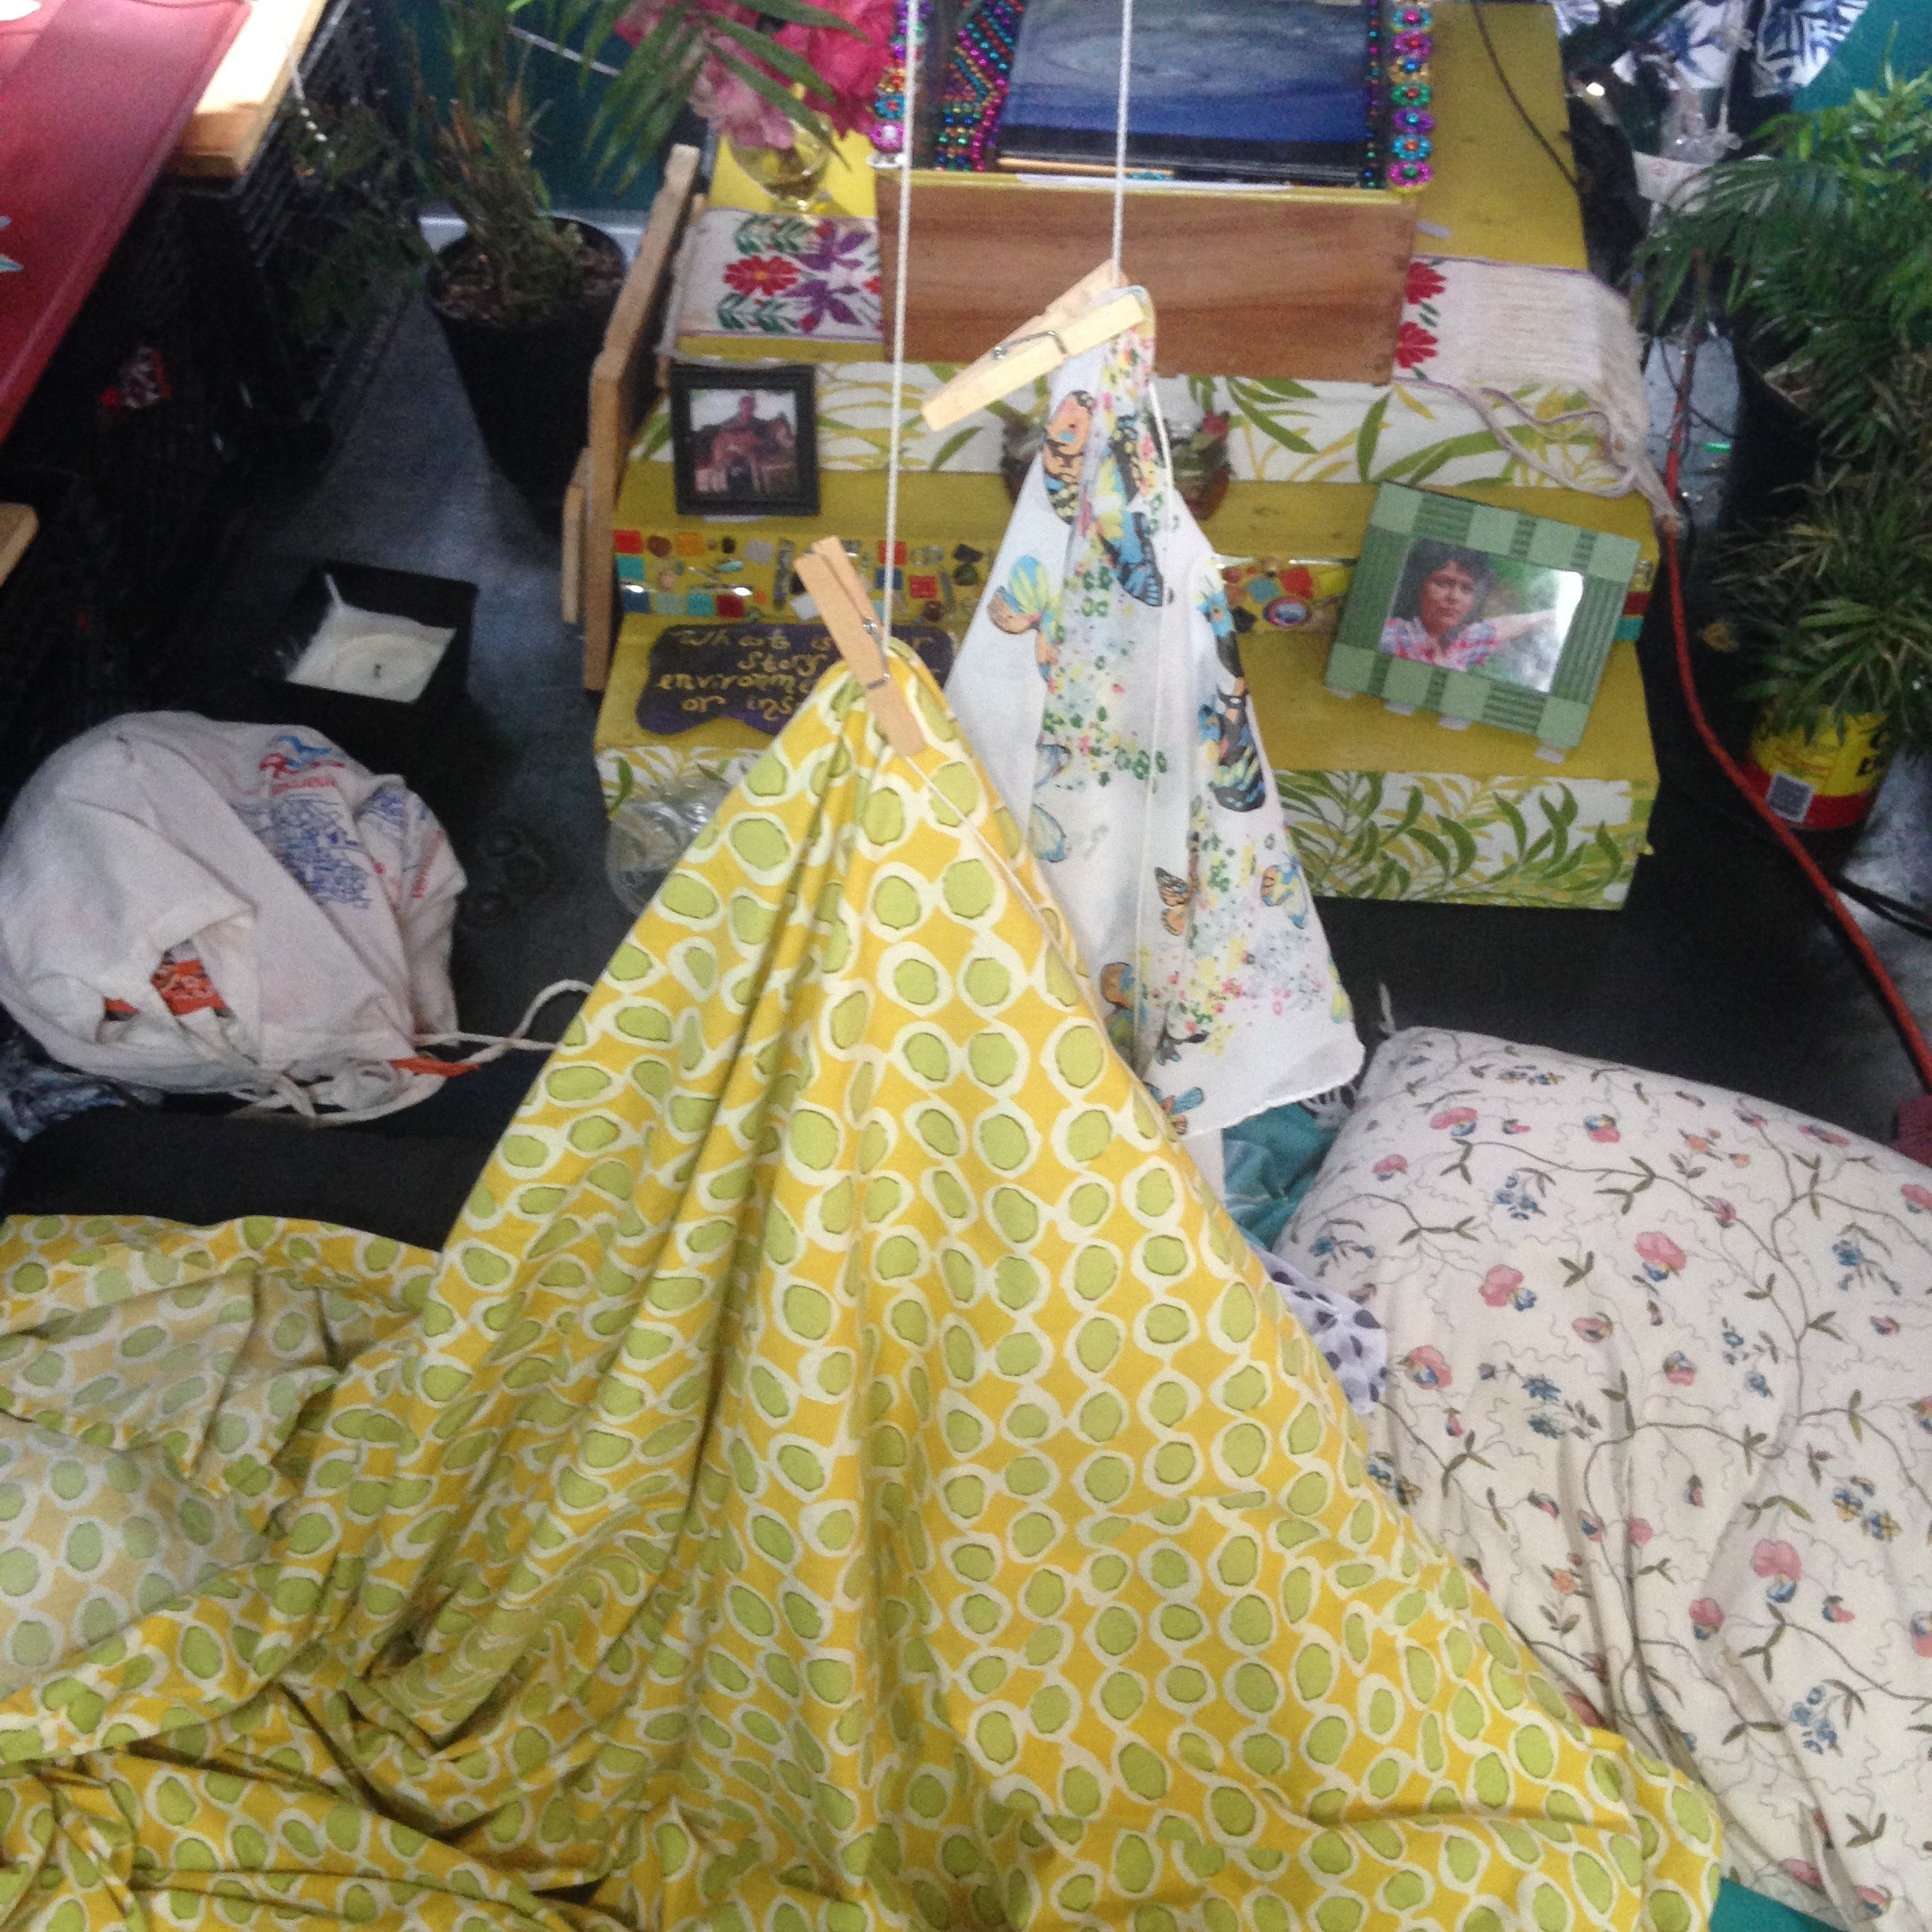 Sheet Tents, the new, the innovative mosquito protection! Sure to make you sweat, but there to protect! The Sheet Tent [patent pending].   Review: 3 out of 5 stars  Elena woke up in the darkness to Emma offering a hand fan. We were sprawled on our backs beneath a hand built sheet tent that was suspended from the ceiling with hooks, rope, and clothespins. We believed the sheet tent was working, and it was indeed keeping the mosquitoes out, but it was also keeping the fresh air out and the hot air in, on a 70 degree night. We laid, basking in our sweat, suffocating in our jailhouse sauna. Emma eventually evacuated to sleep on the roof of the bus one night, and, in utter desperation, on the sidewalk another night.